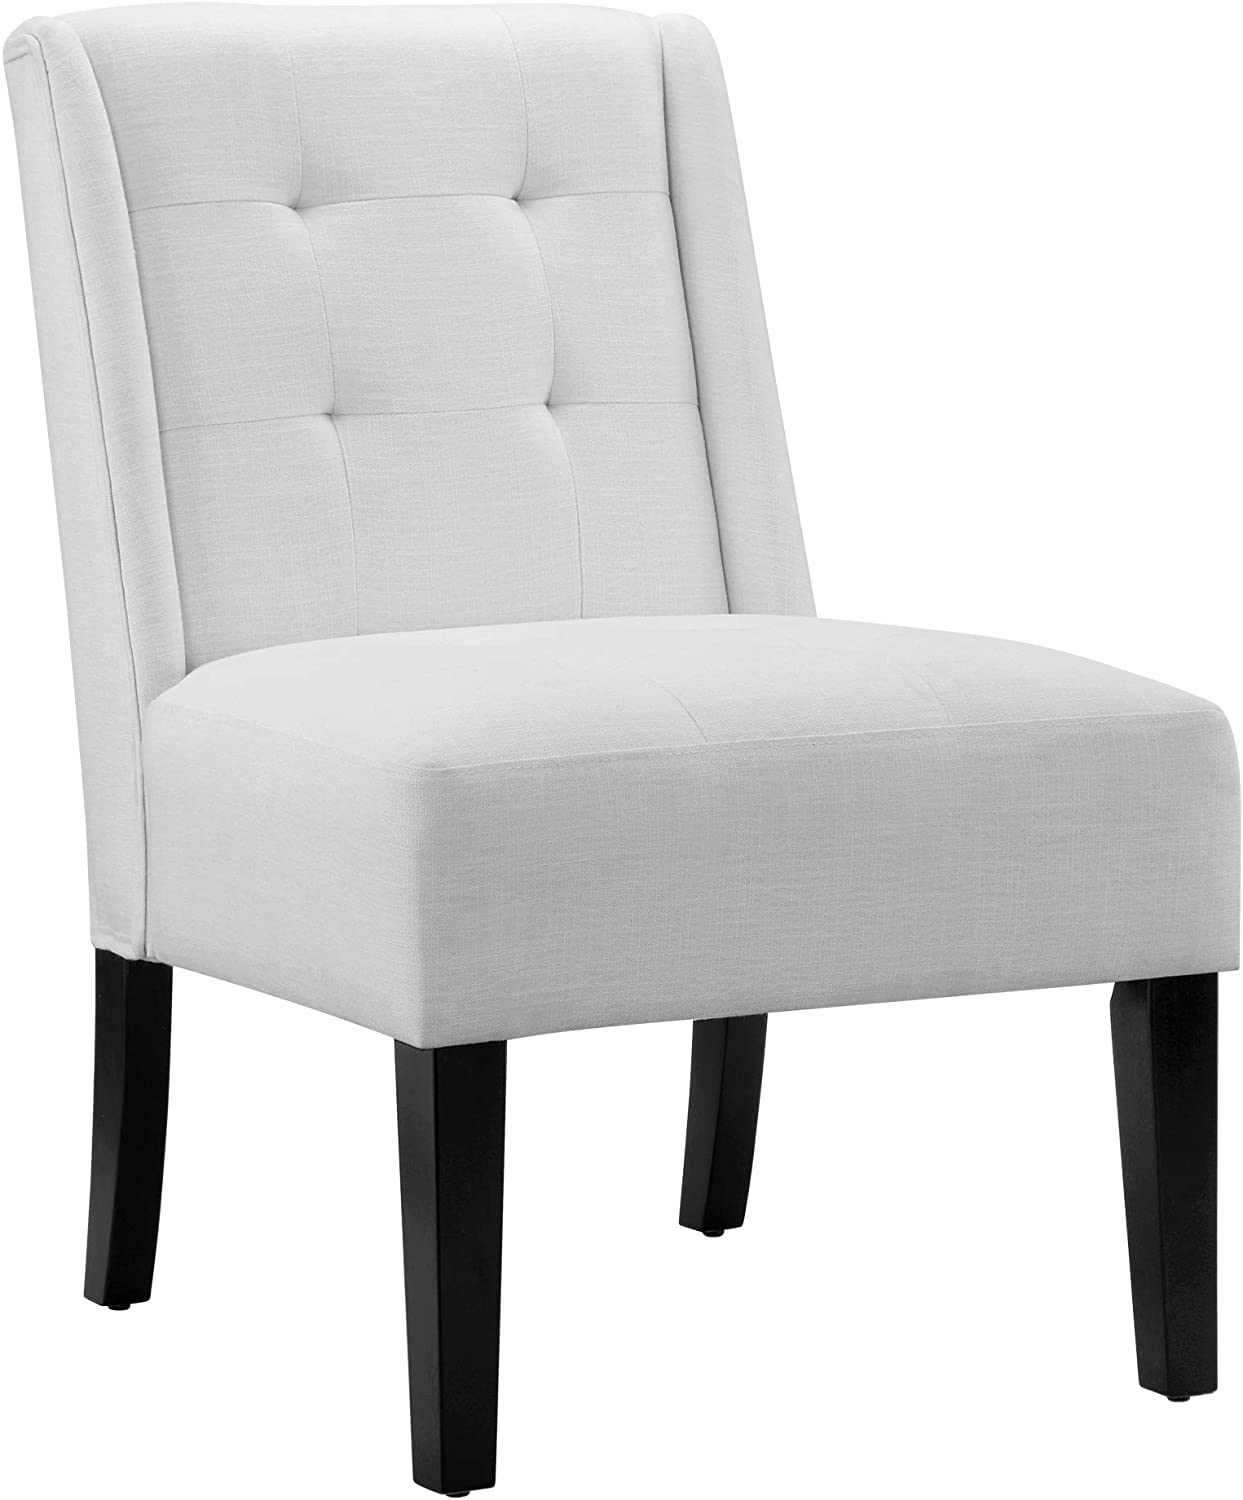 AmazonBasics tufted accent chair with wood legs, White